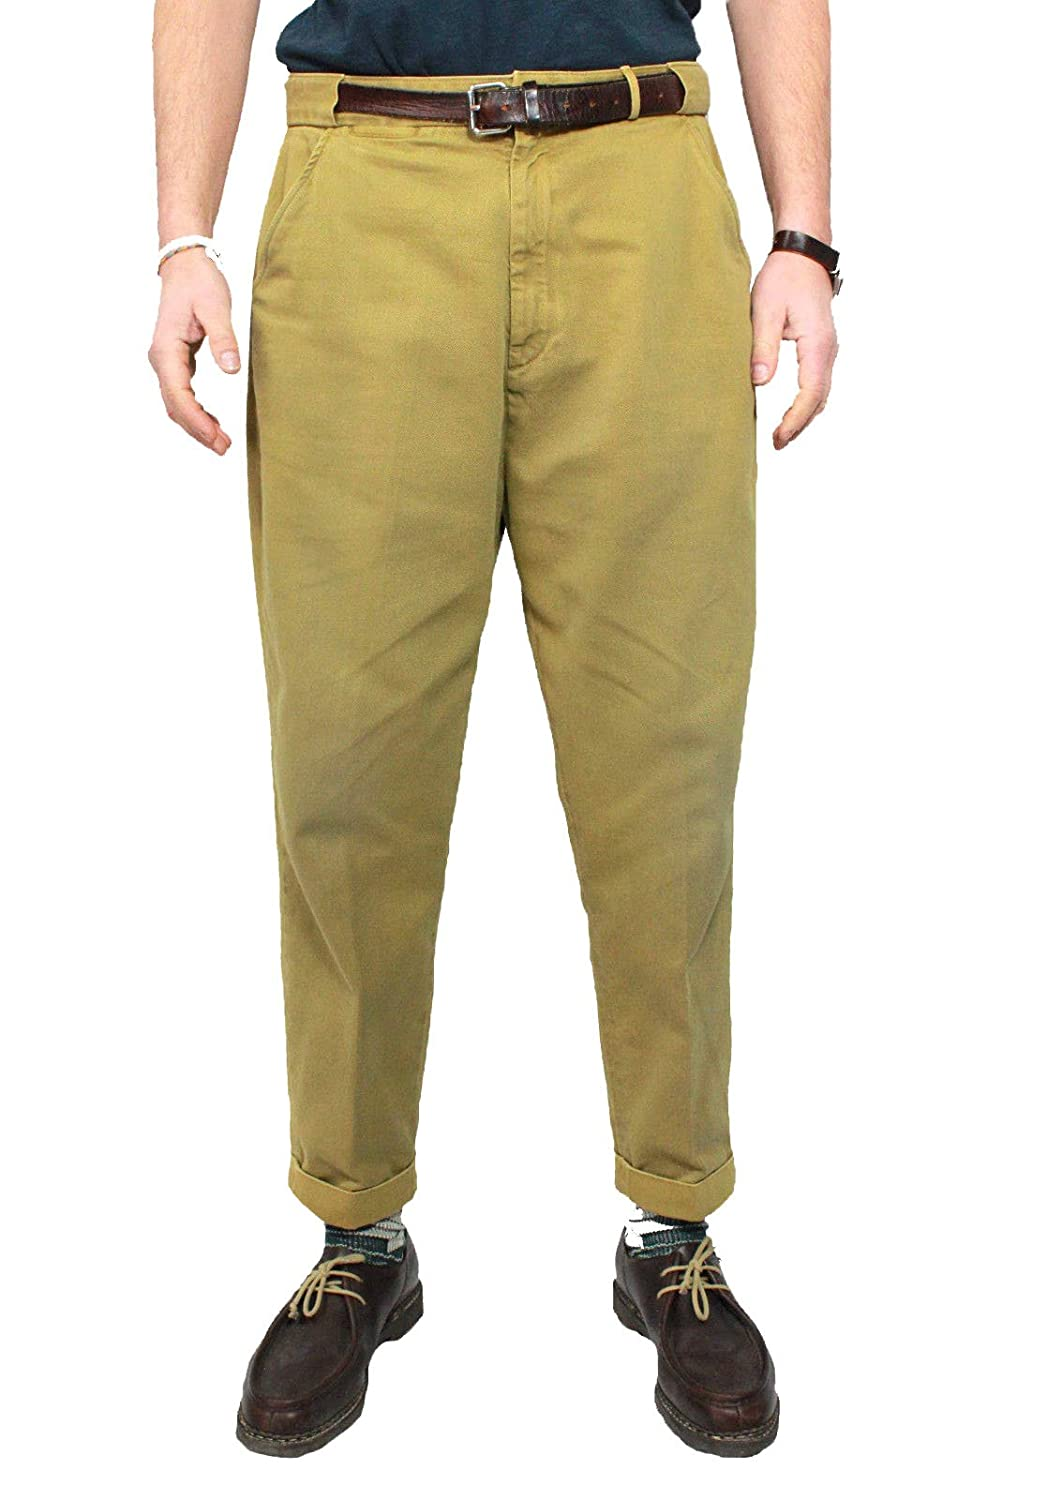 LEVI'S VINTAGE CLOTHING Chino cloth man mod 1920's mustard color 100% cotton (31)